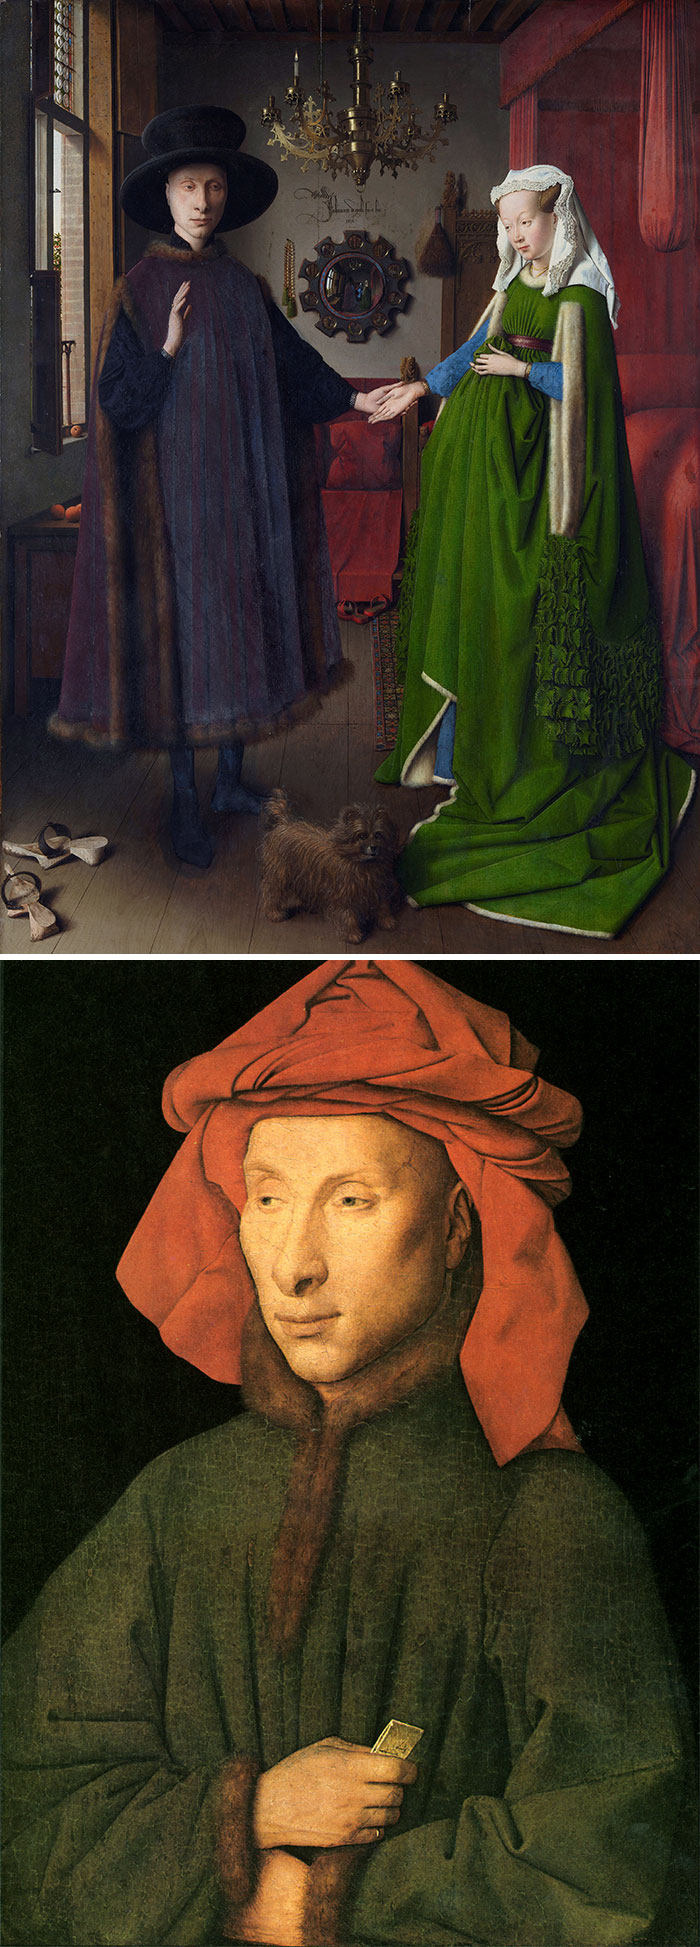 How to identify famous painters - Van Eyck